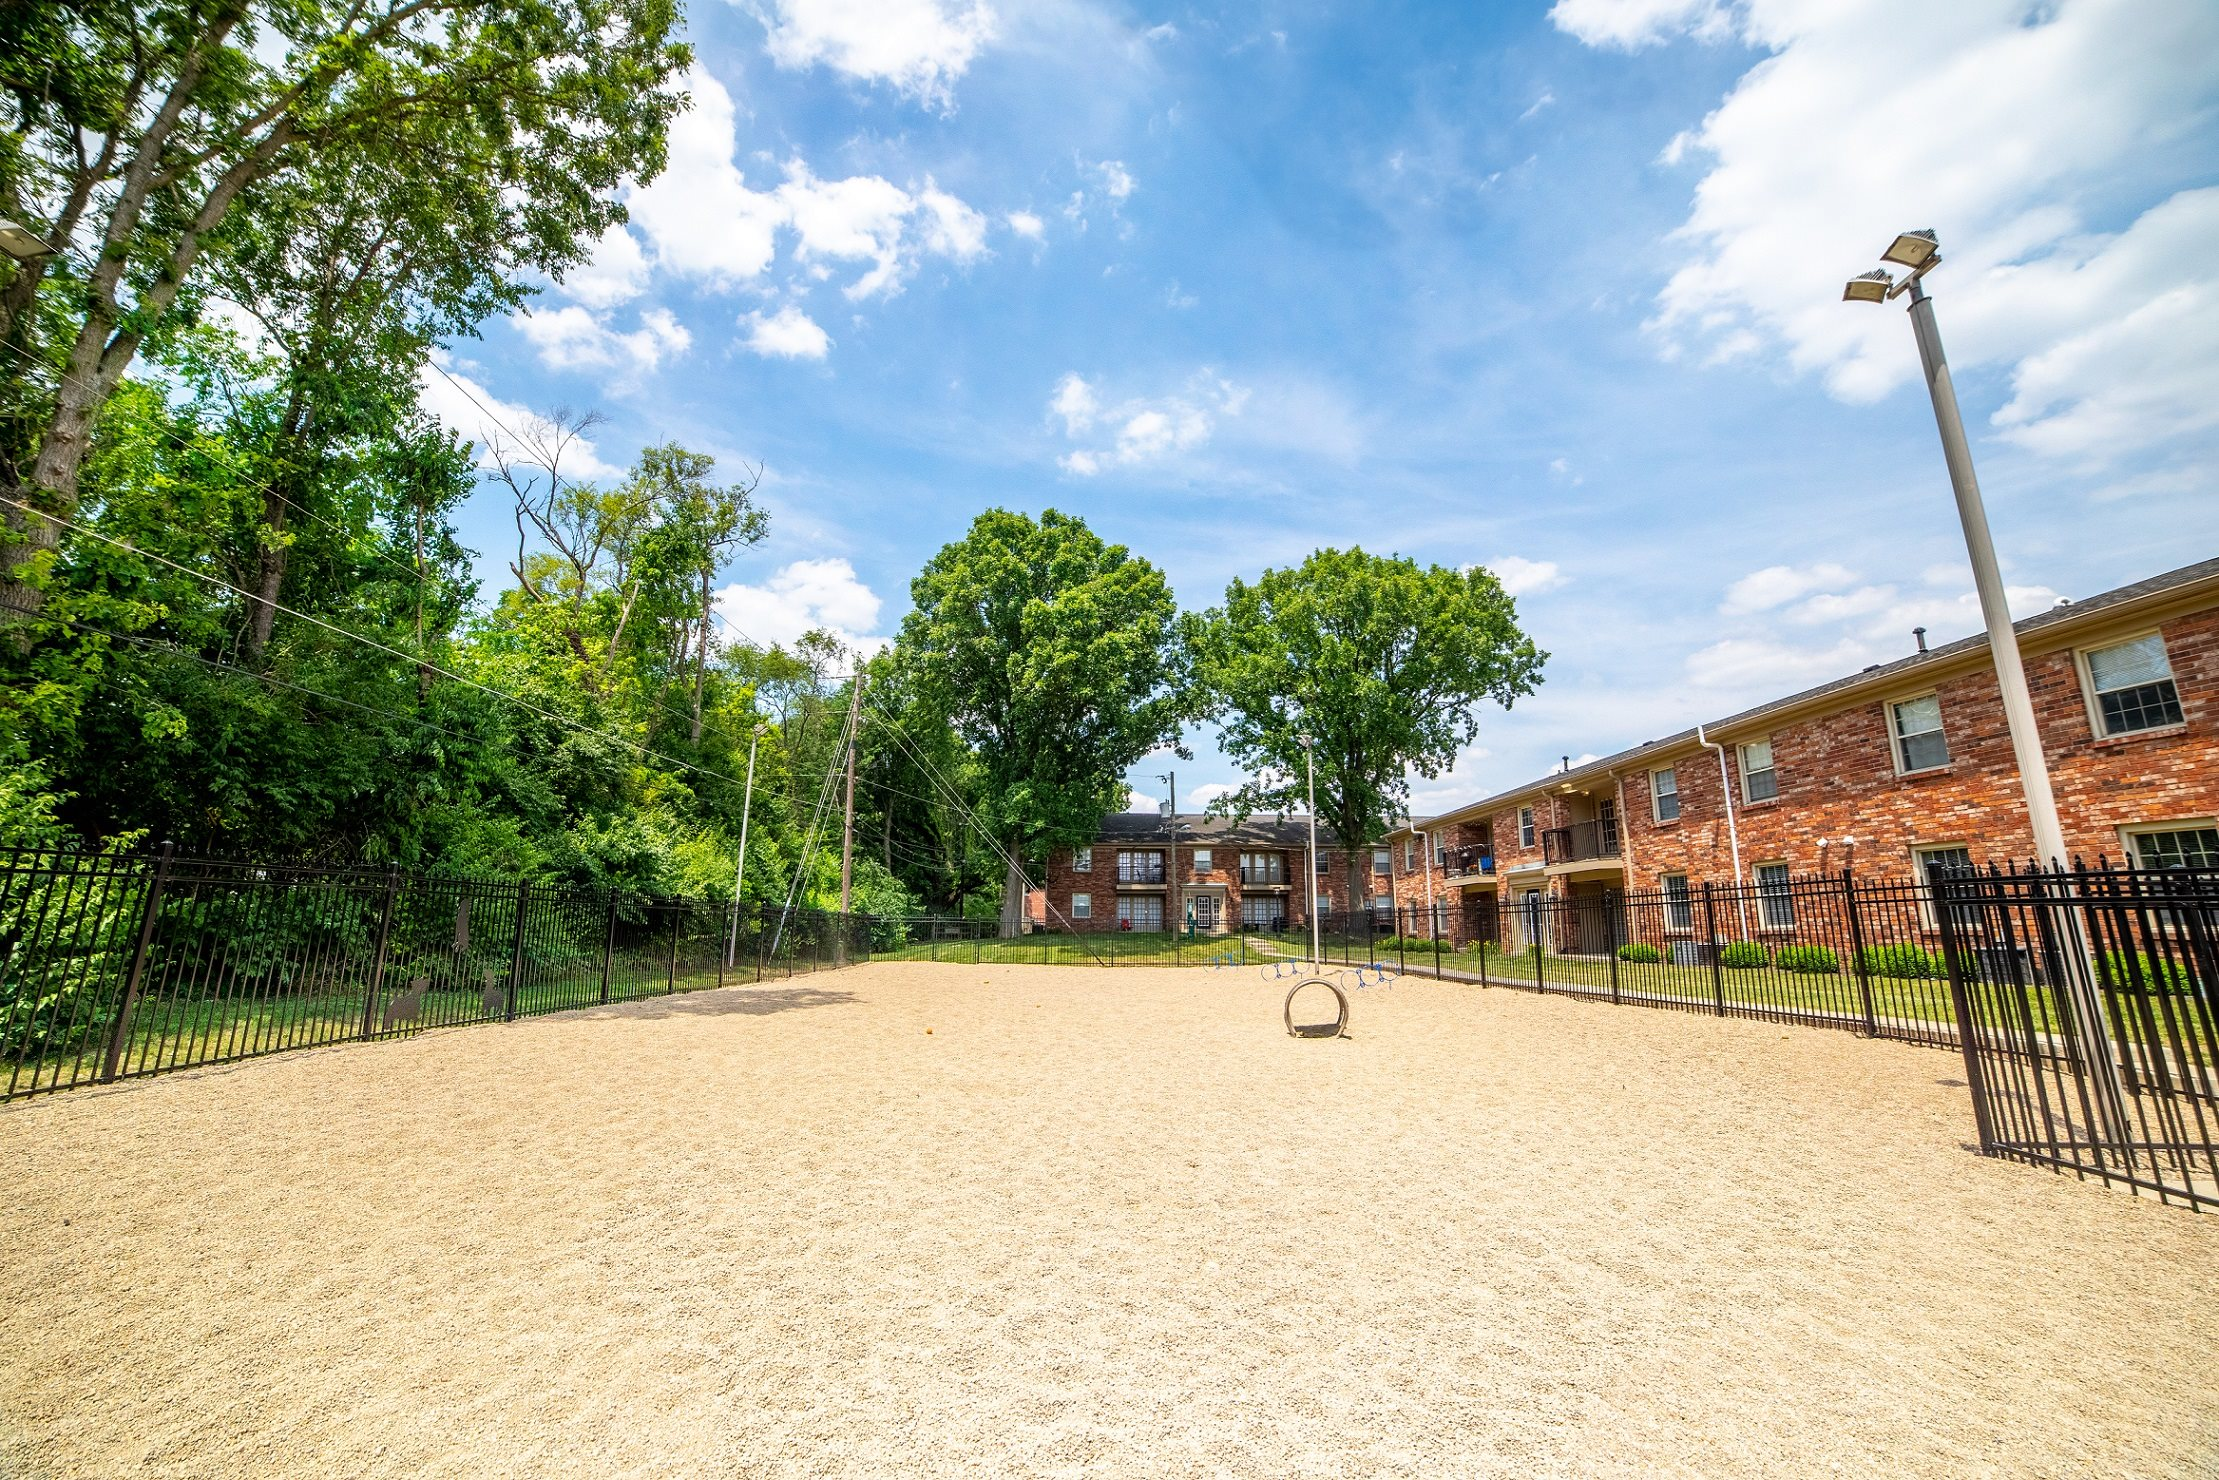 Dog Park at Buckingham Monon Living, Indianapolis, Indiana